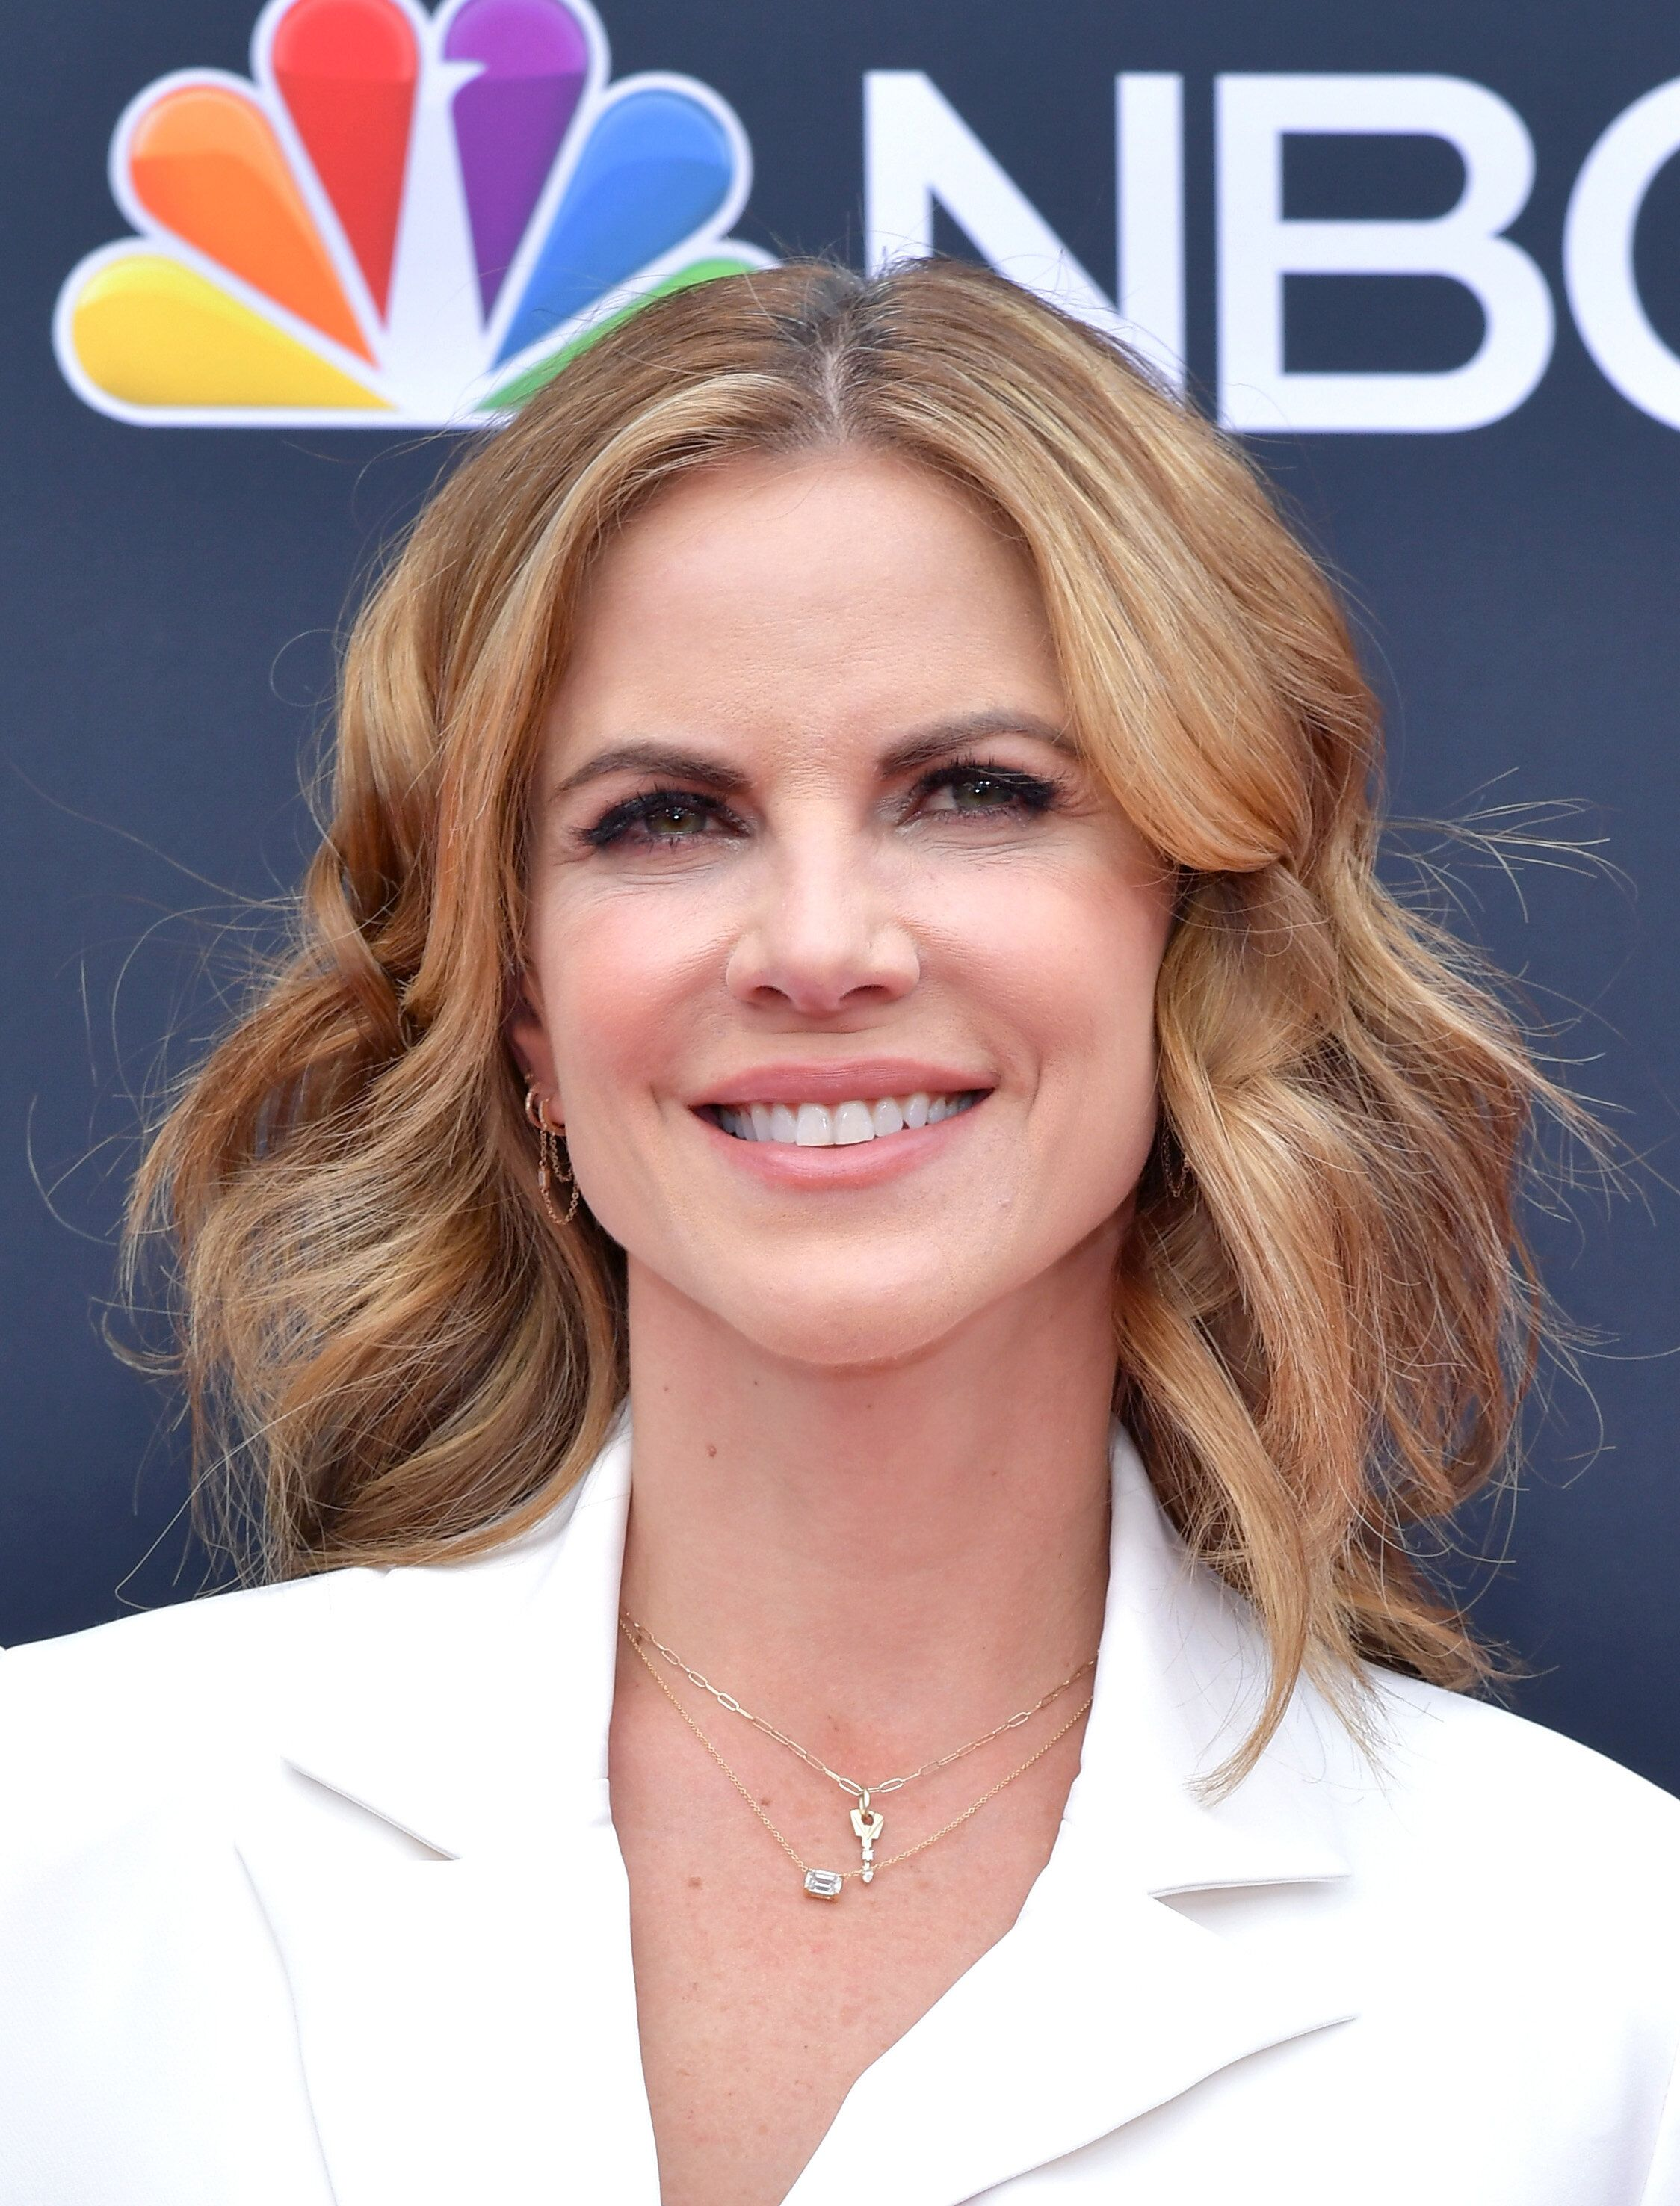 LAS VEGAS, NV - MAY 01:  Natalie Morales attends the 2019 Billboard Music Awards at MGM Grand Garden Arena on May 1, 2019 in Las Vegas, Nevada.  (Photo by Amy Sussman/FilmMagic)